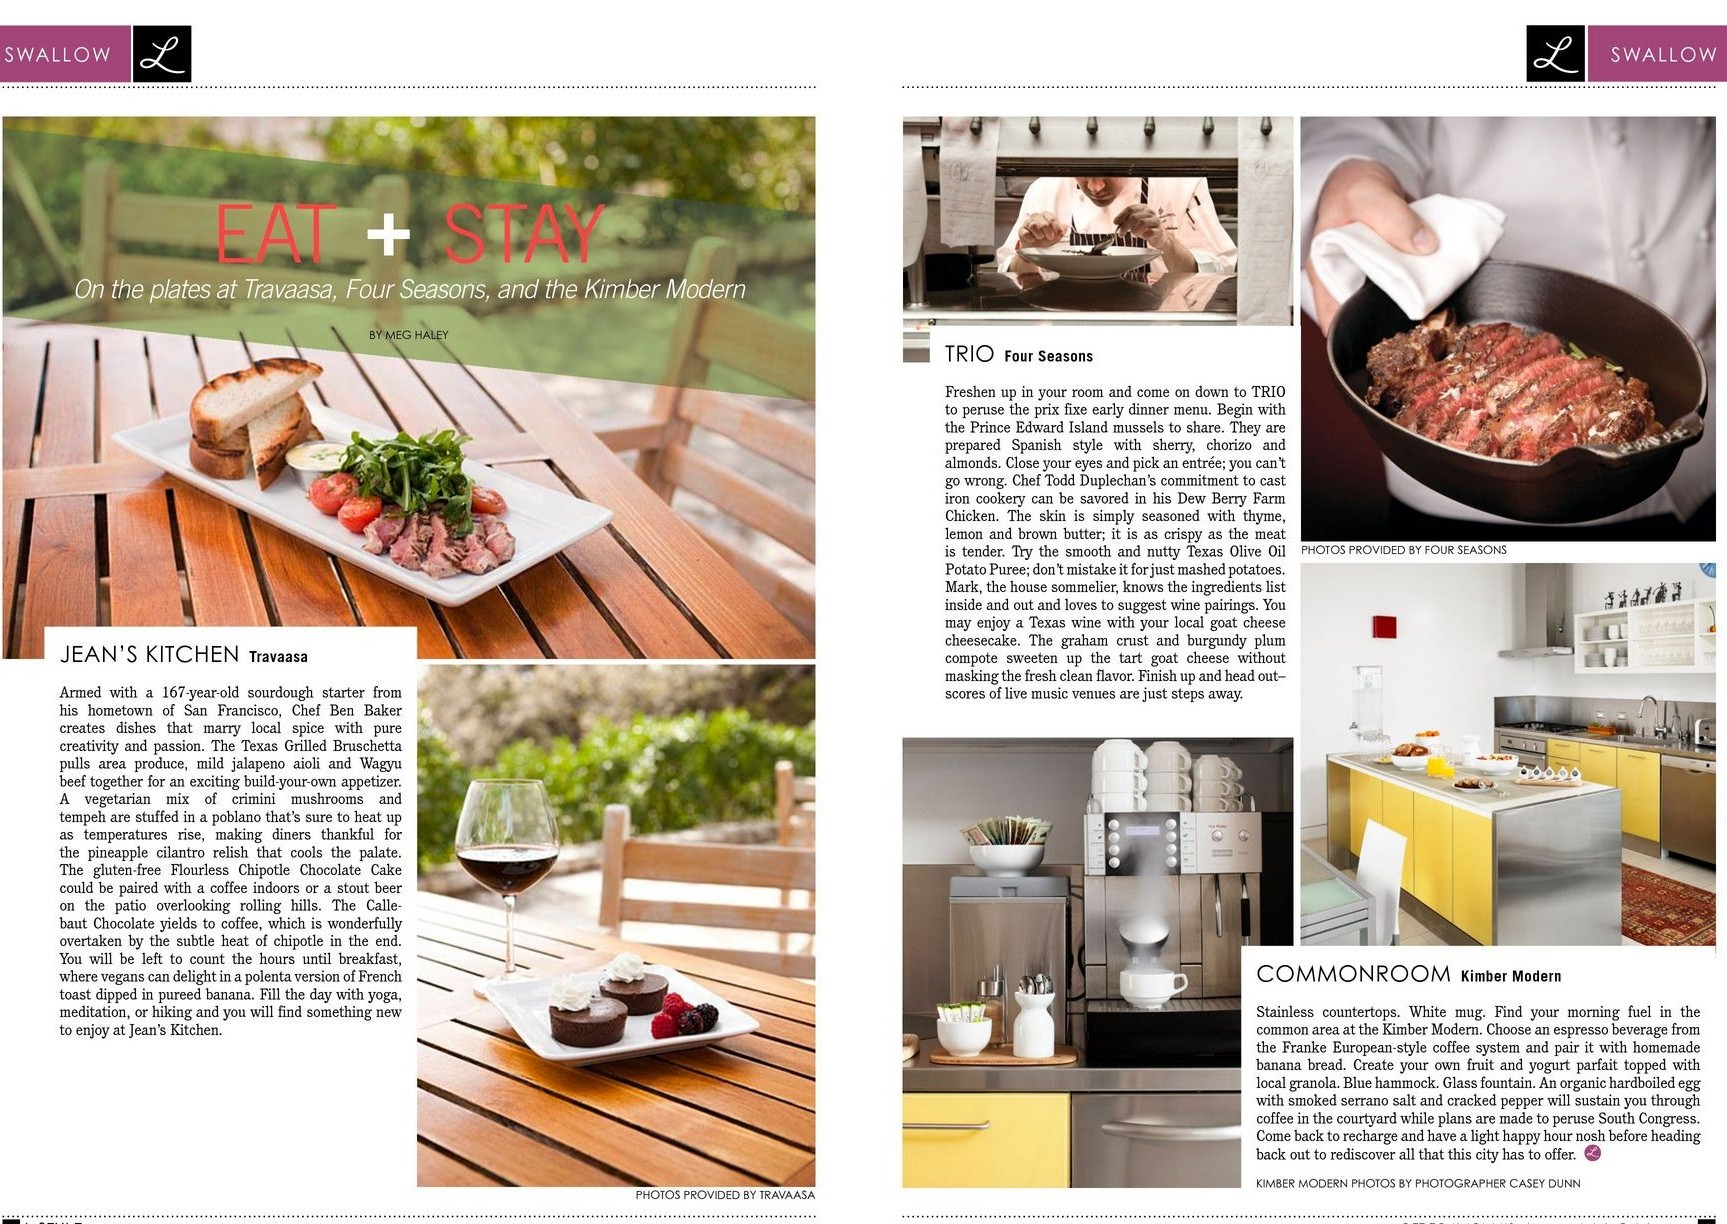 Food and hospitality magazine article